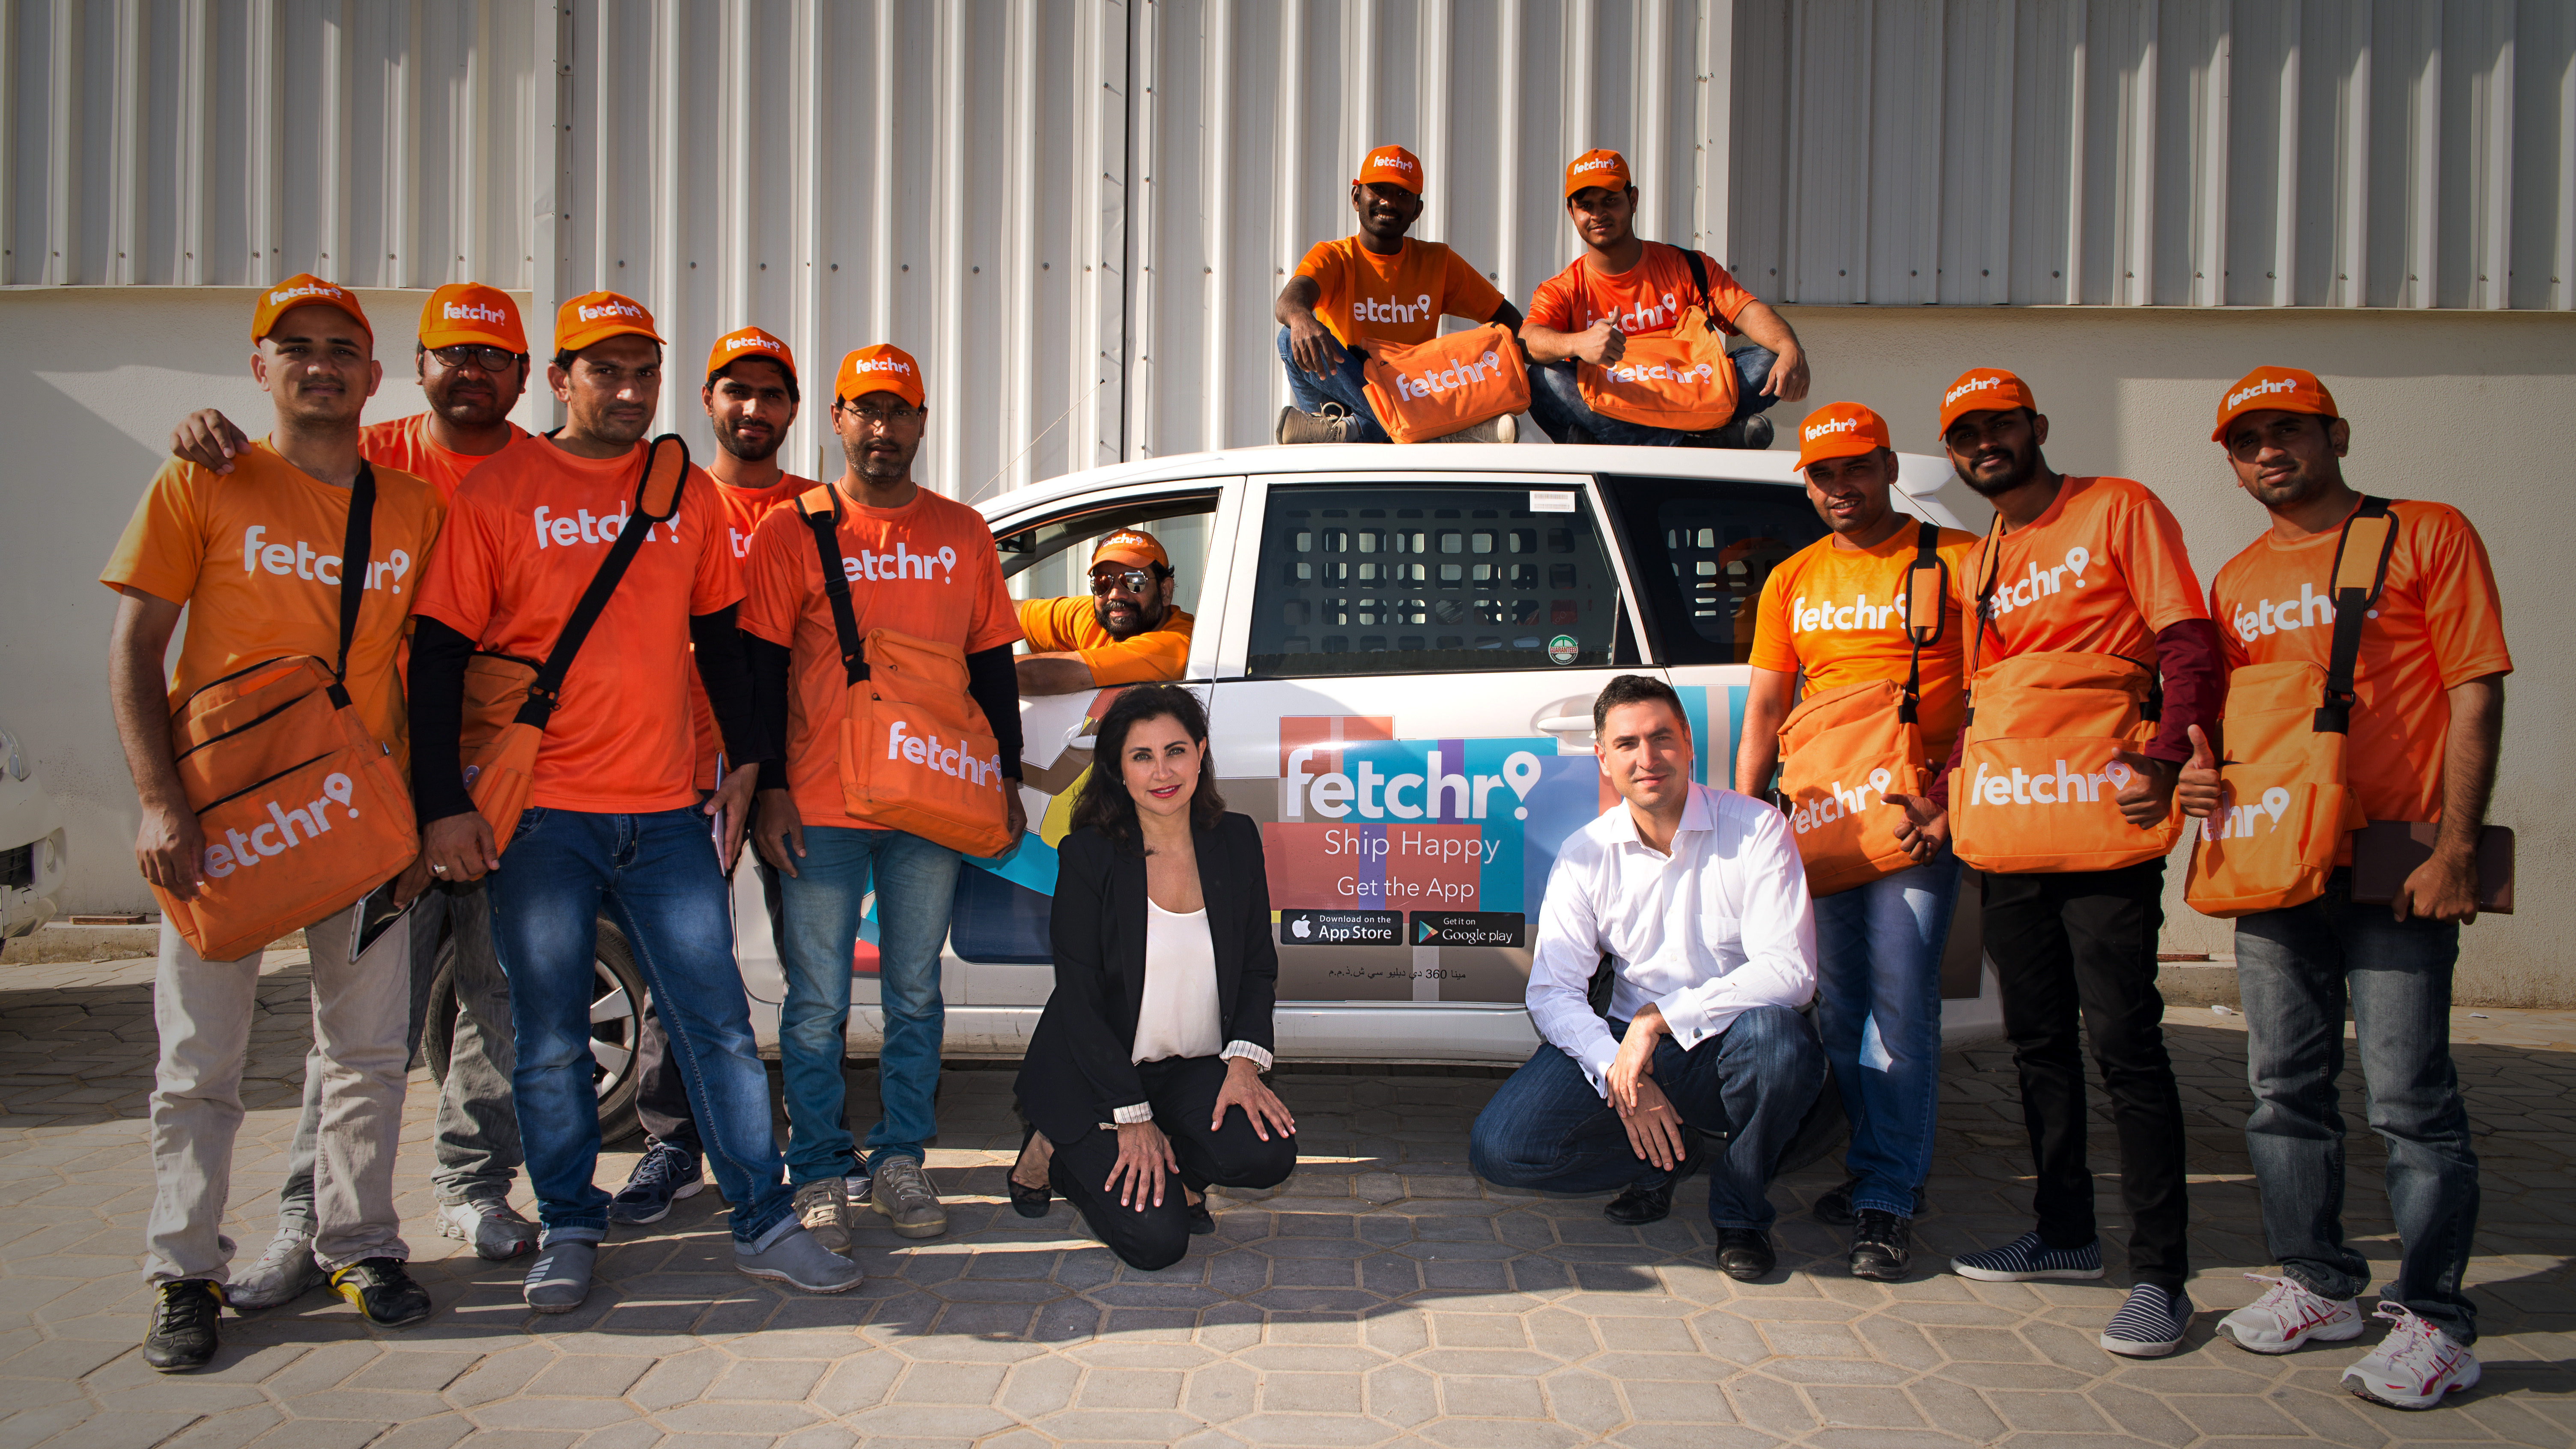 Fetchr Secures $41 Million in Series B Funding Led by New